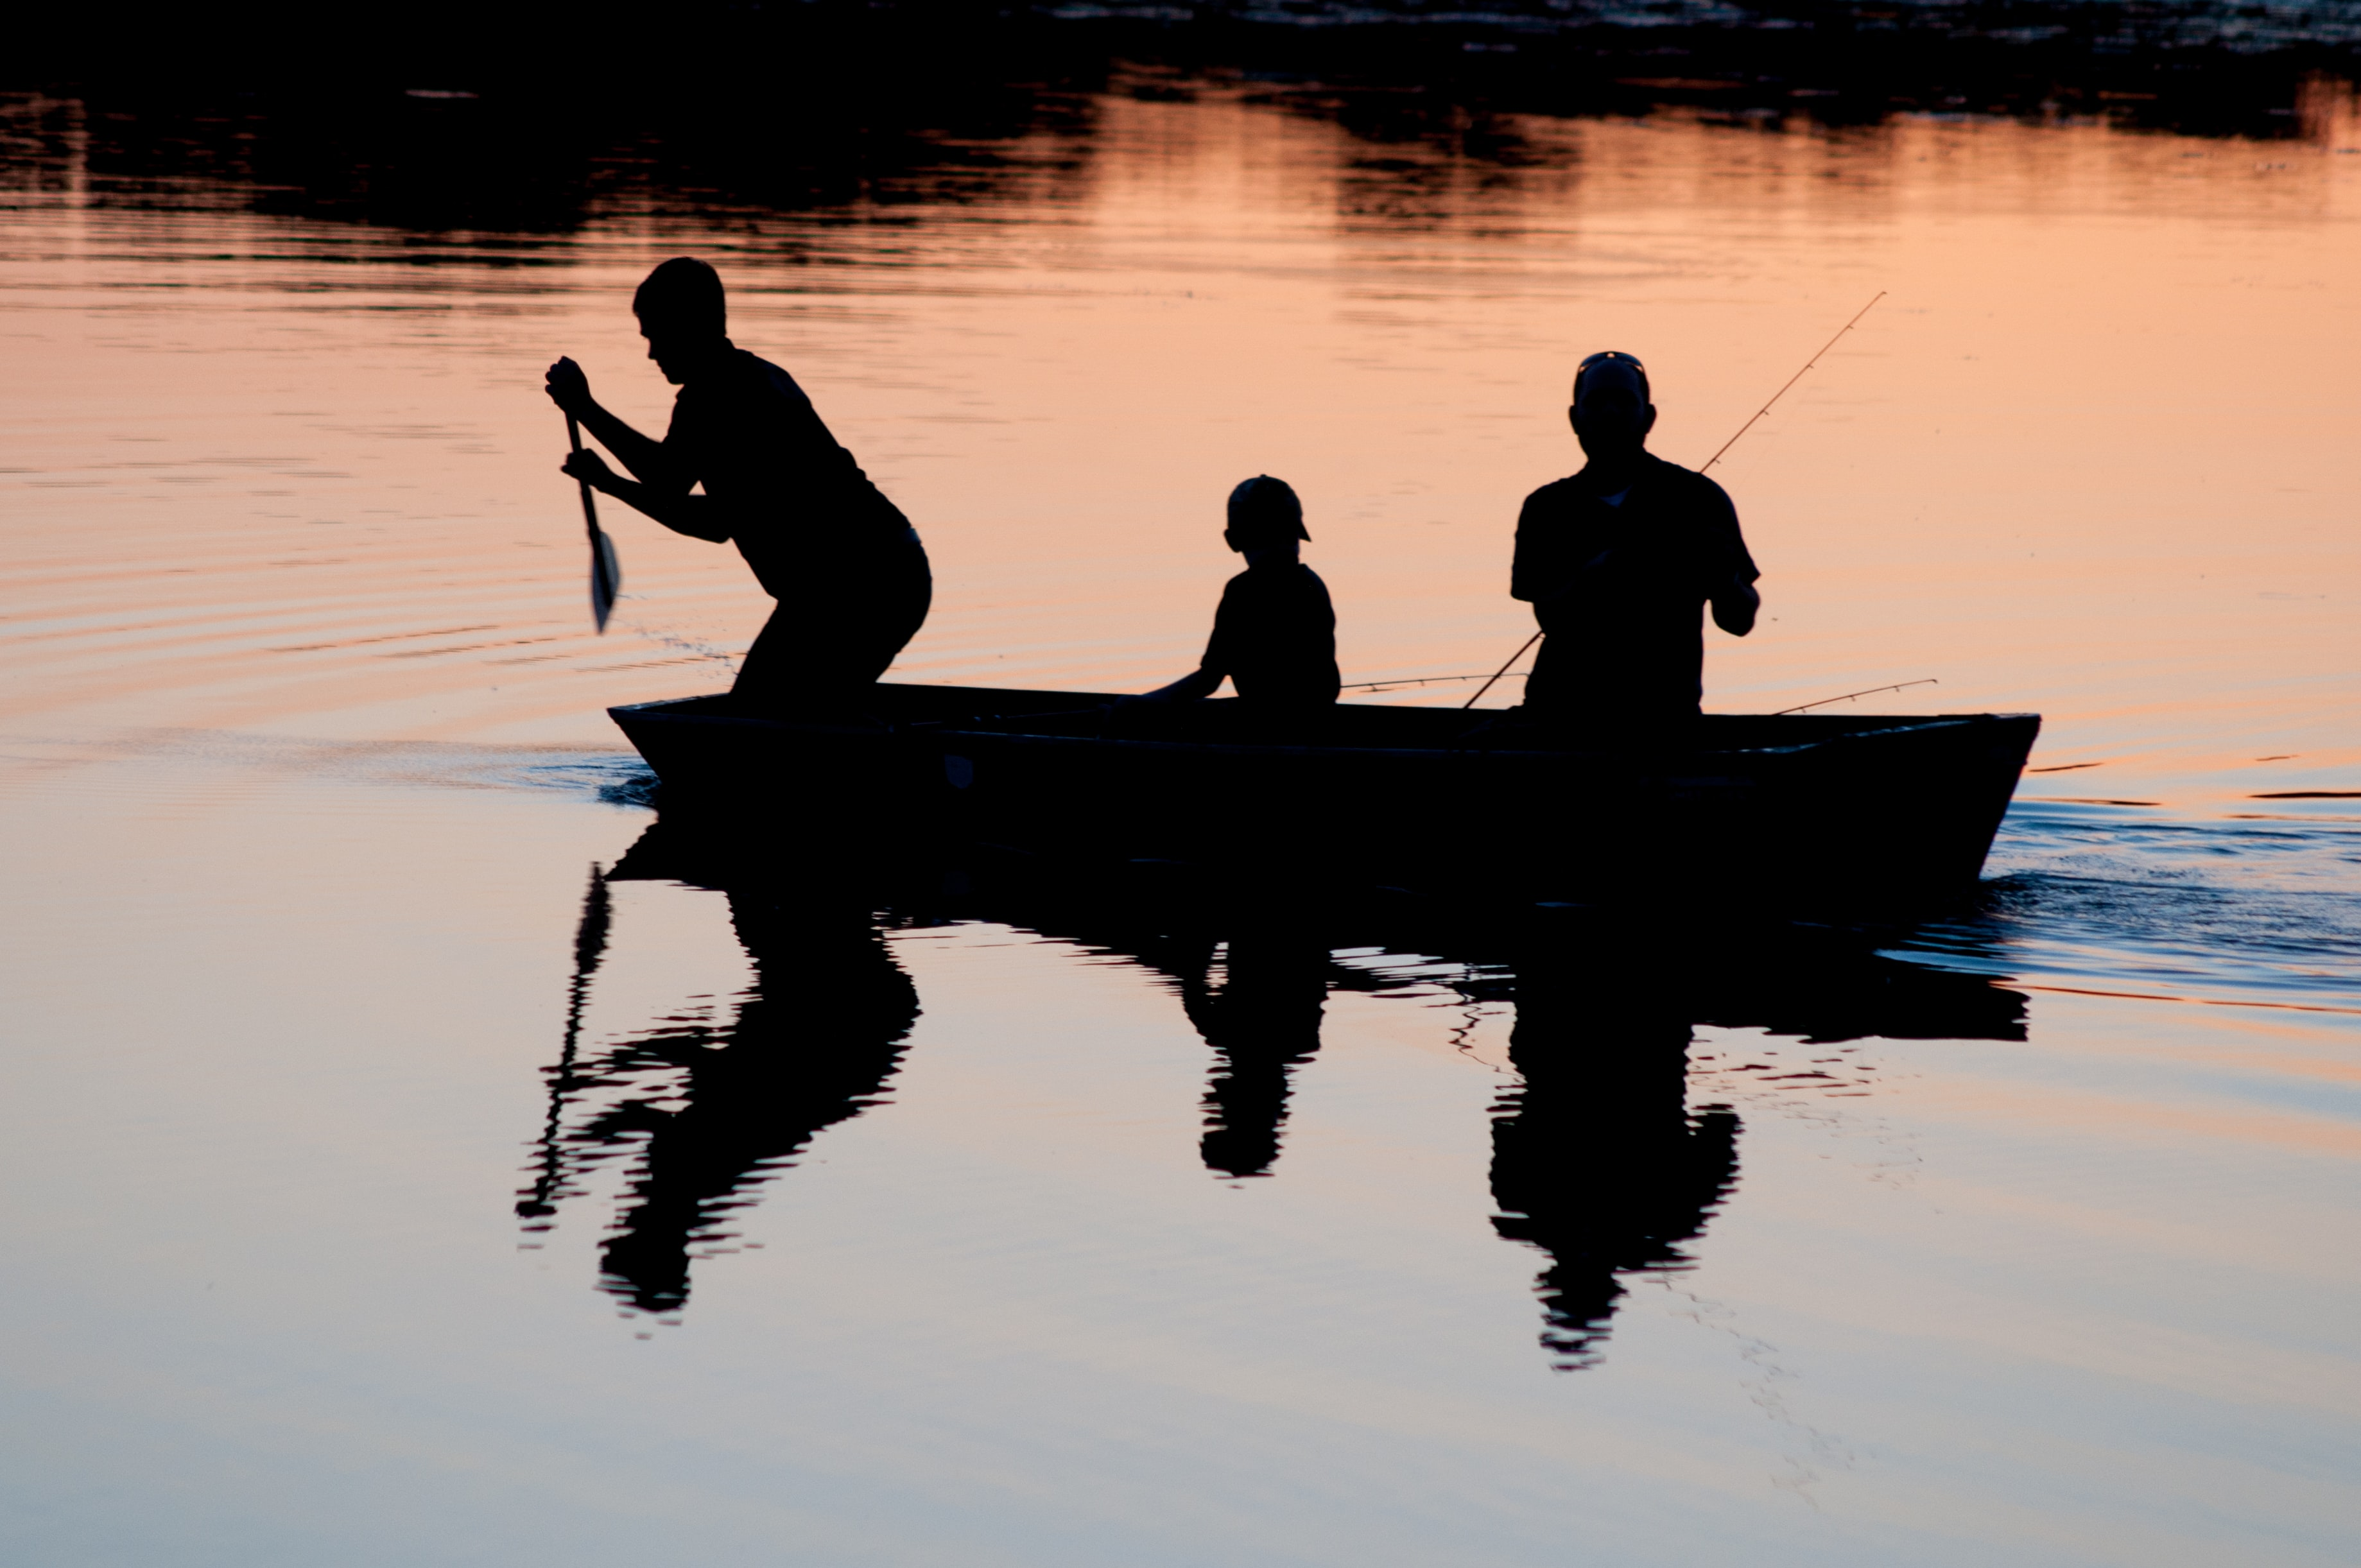 silhouette of three person riding on boat on body of water